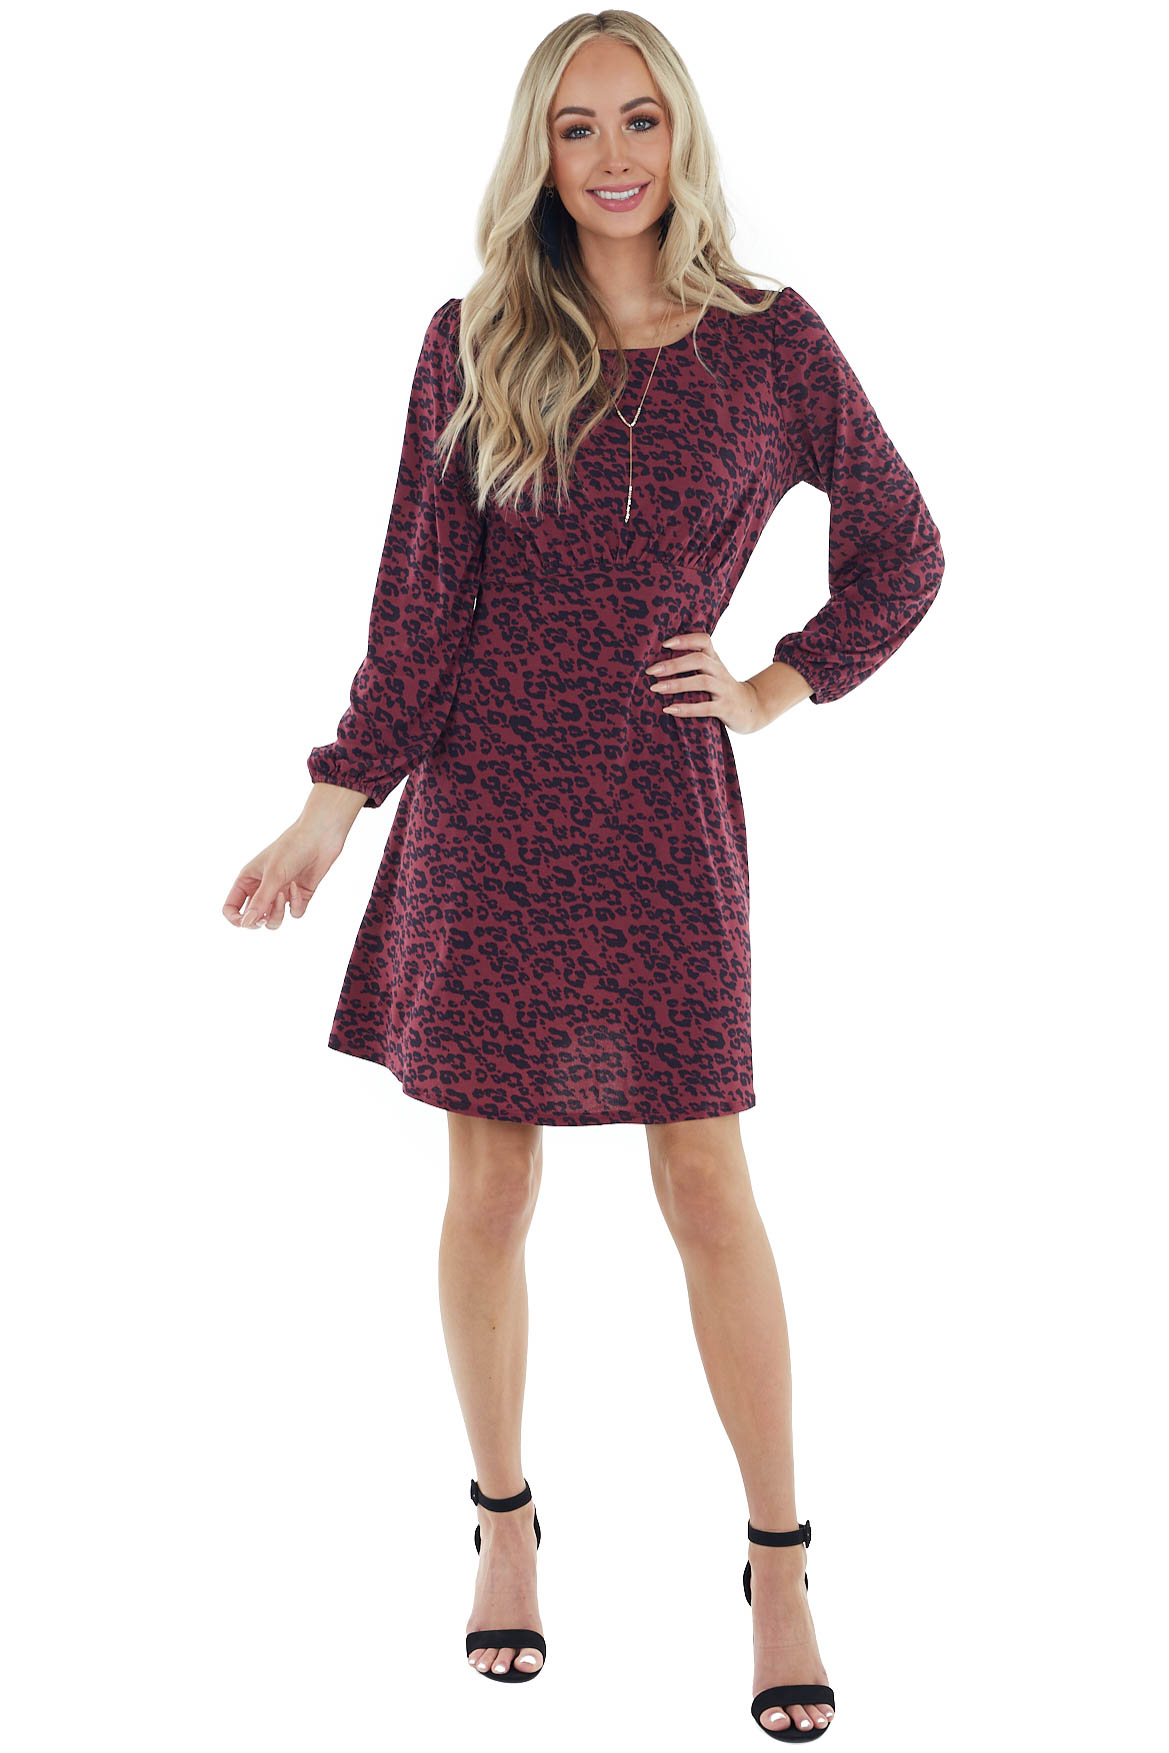 Mulberry and Charcoal Leopard Print Long Sleeve Dress